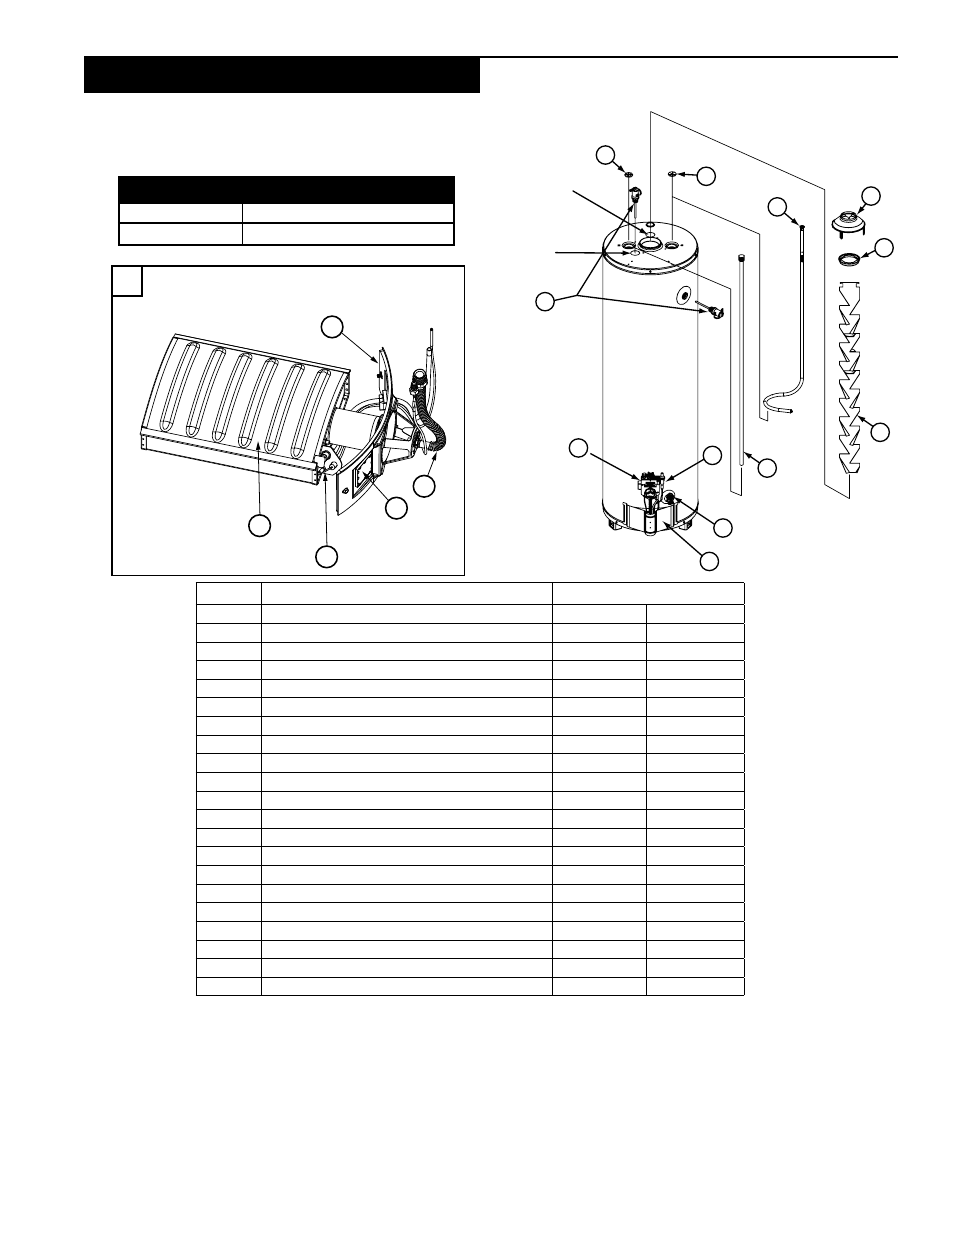 Parts order list, Power miser™ 9 gas water heater, Model